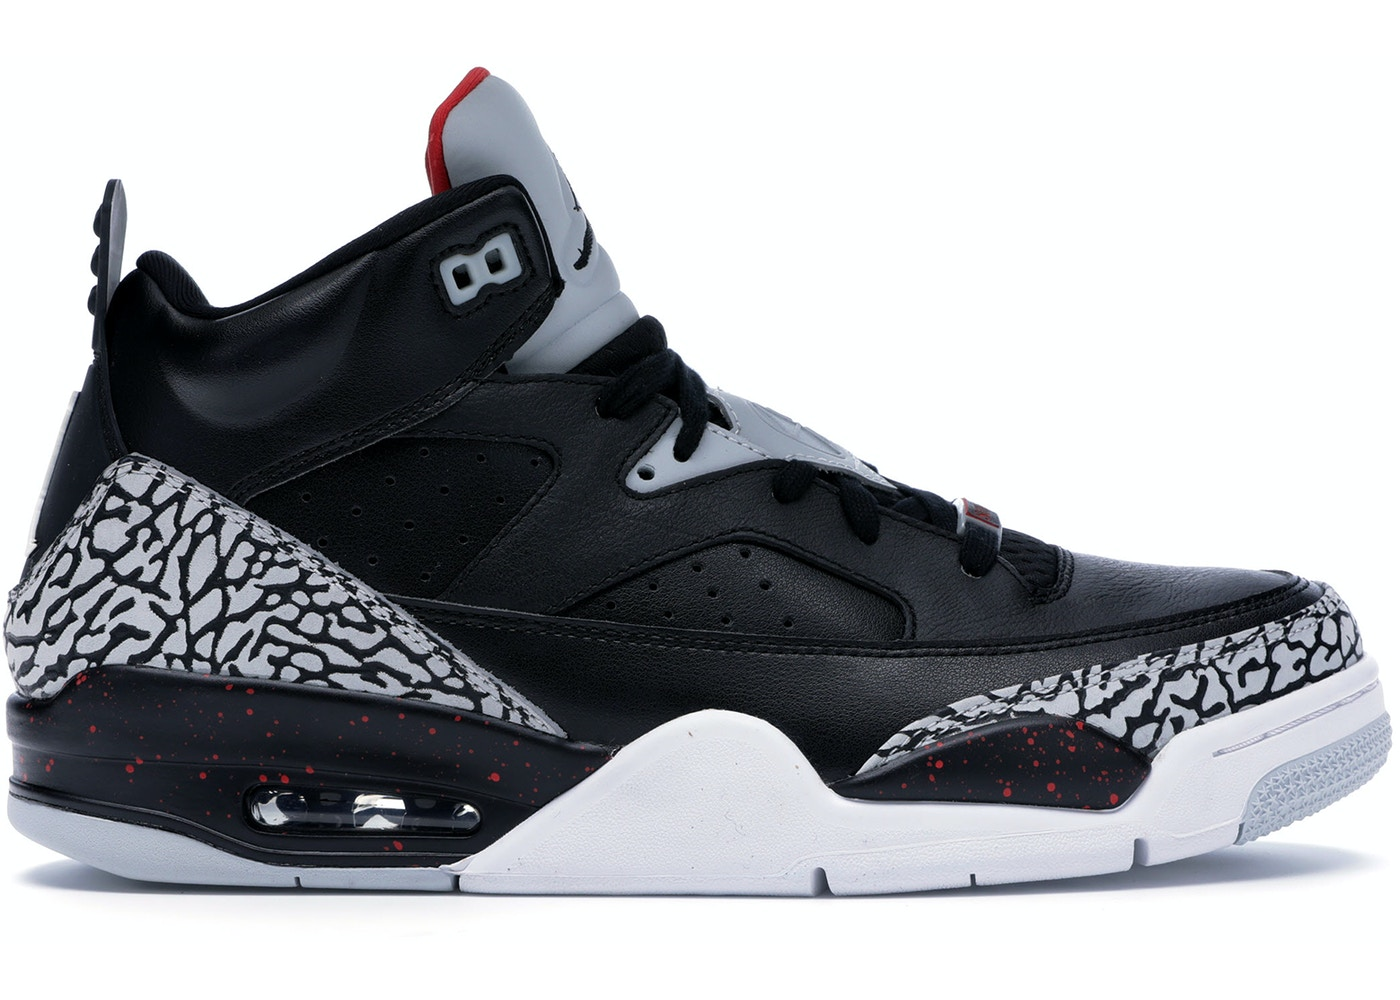 ea9ff0bc62d Jordan Son of Mars Low Black Cement - 580603-002